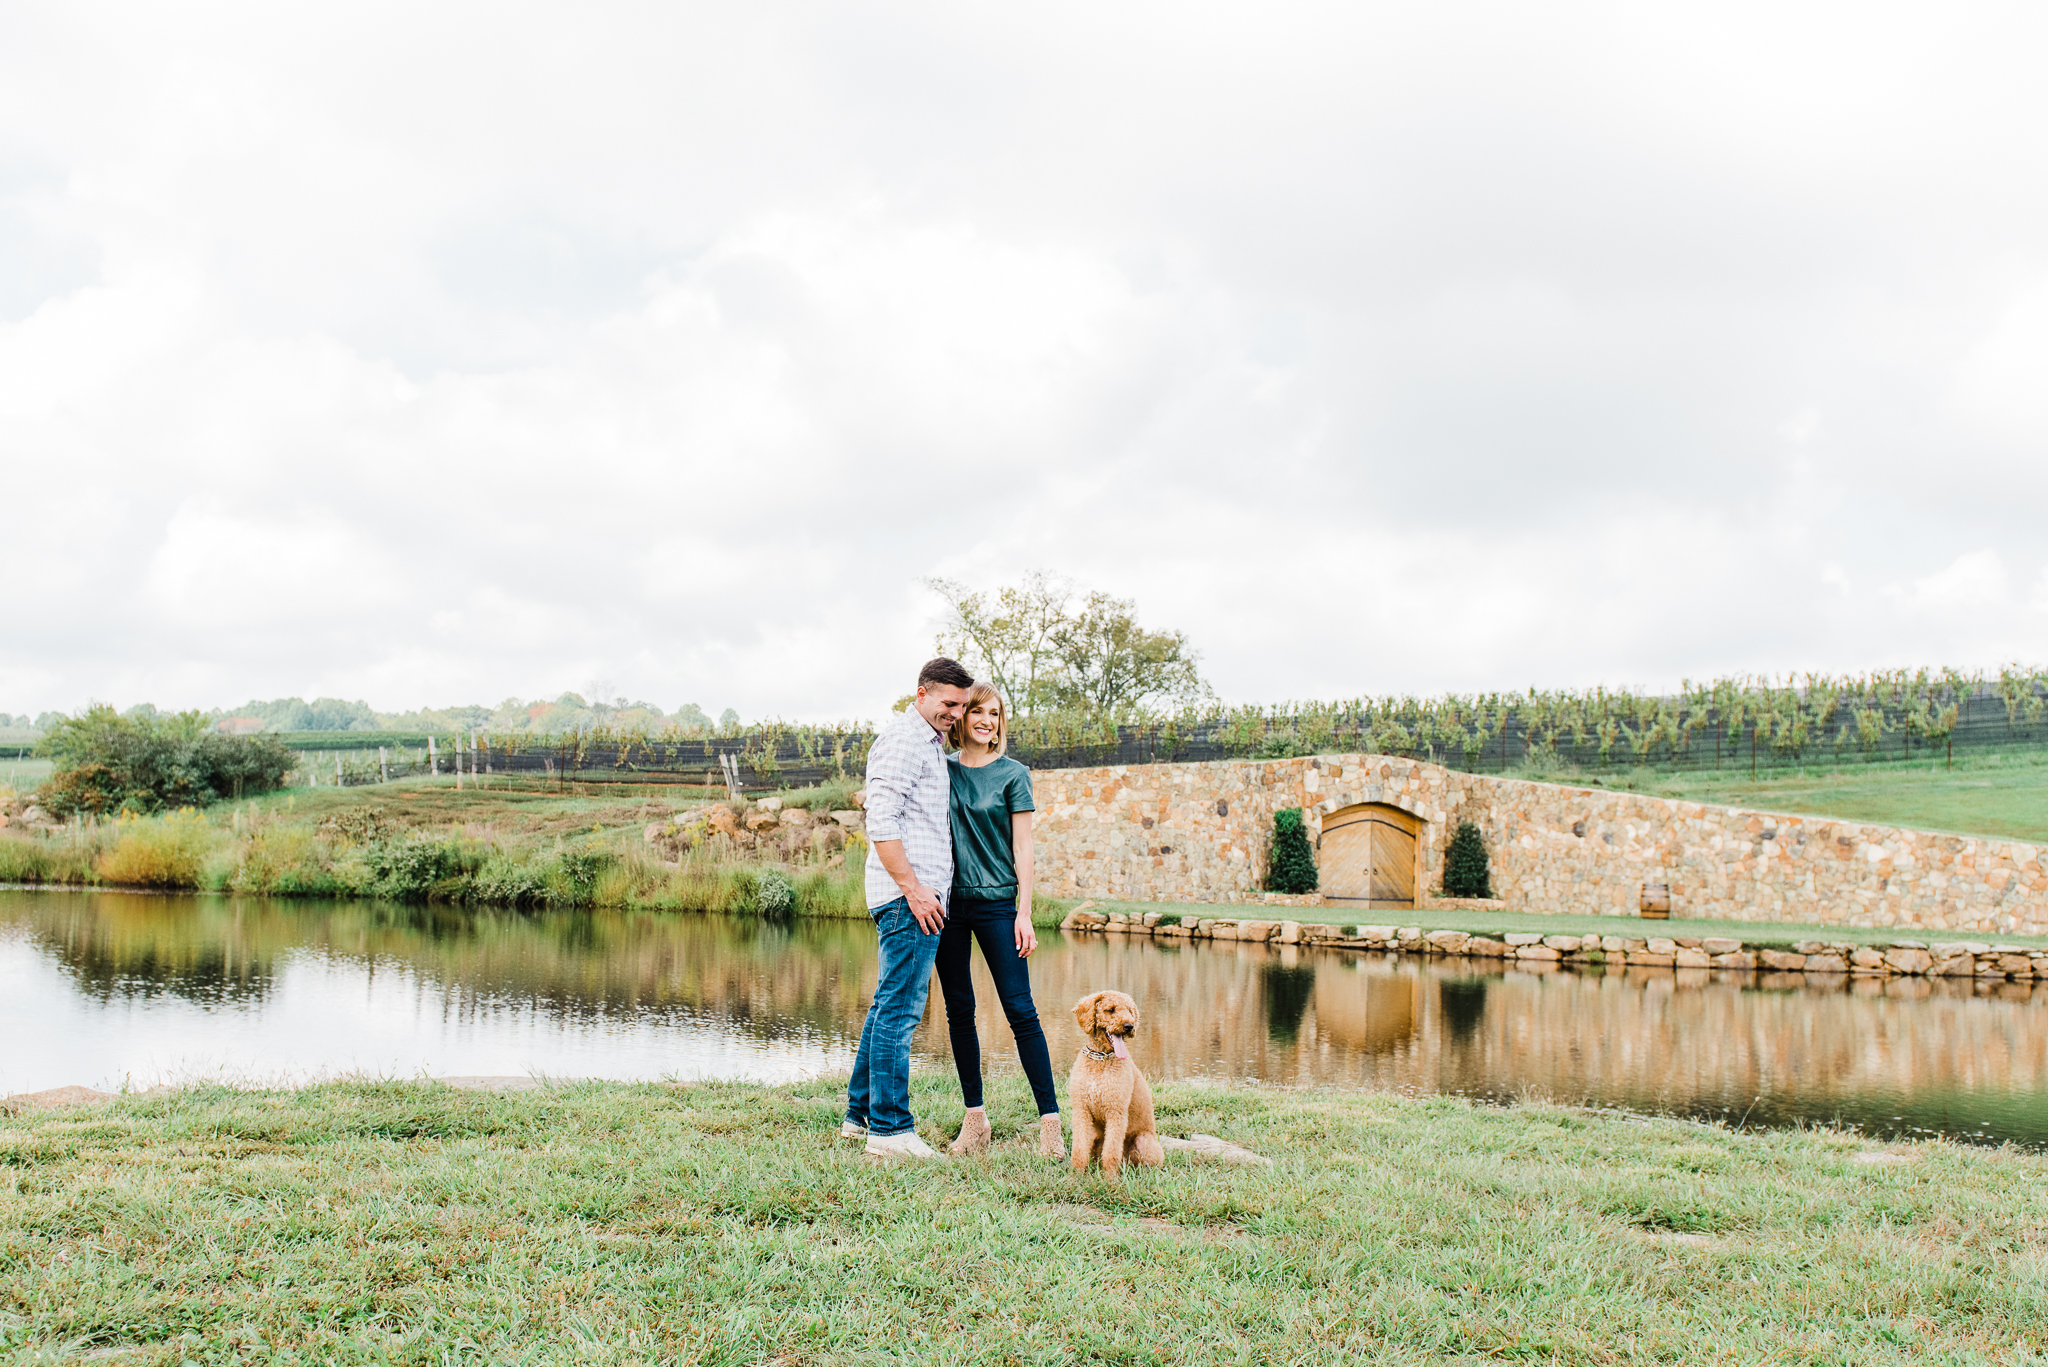 Bethany & Tony's Engagement Session at Stone Tower Winery